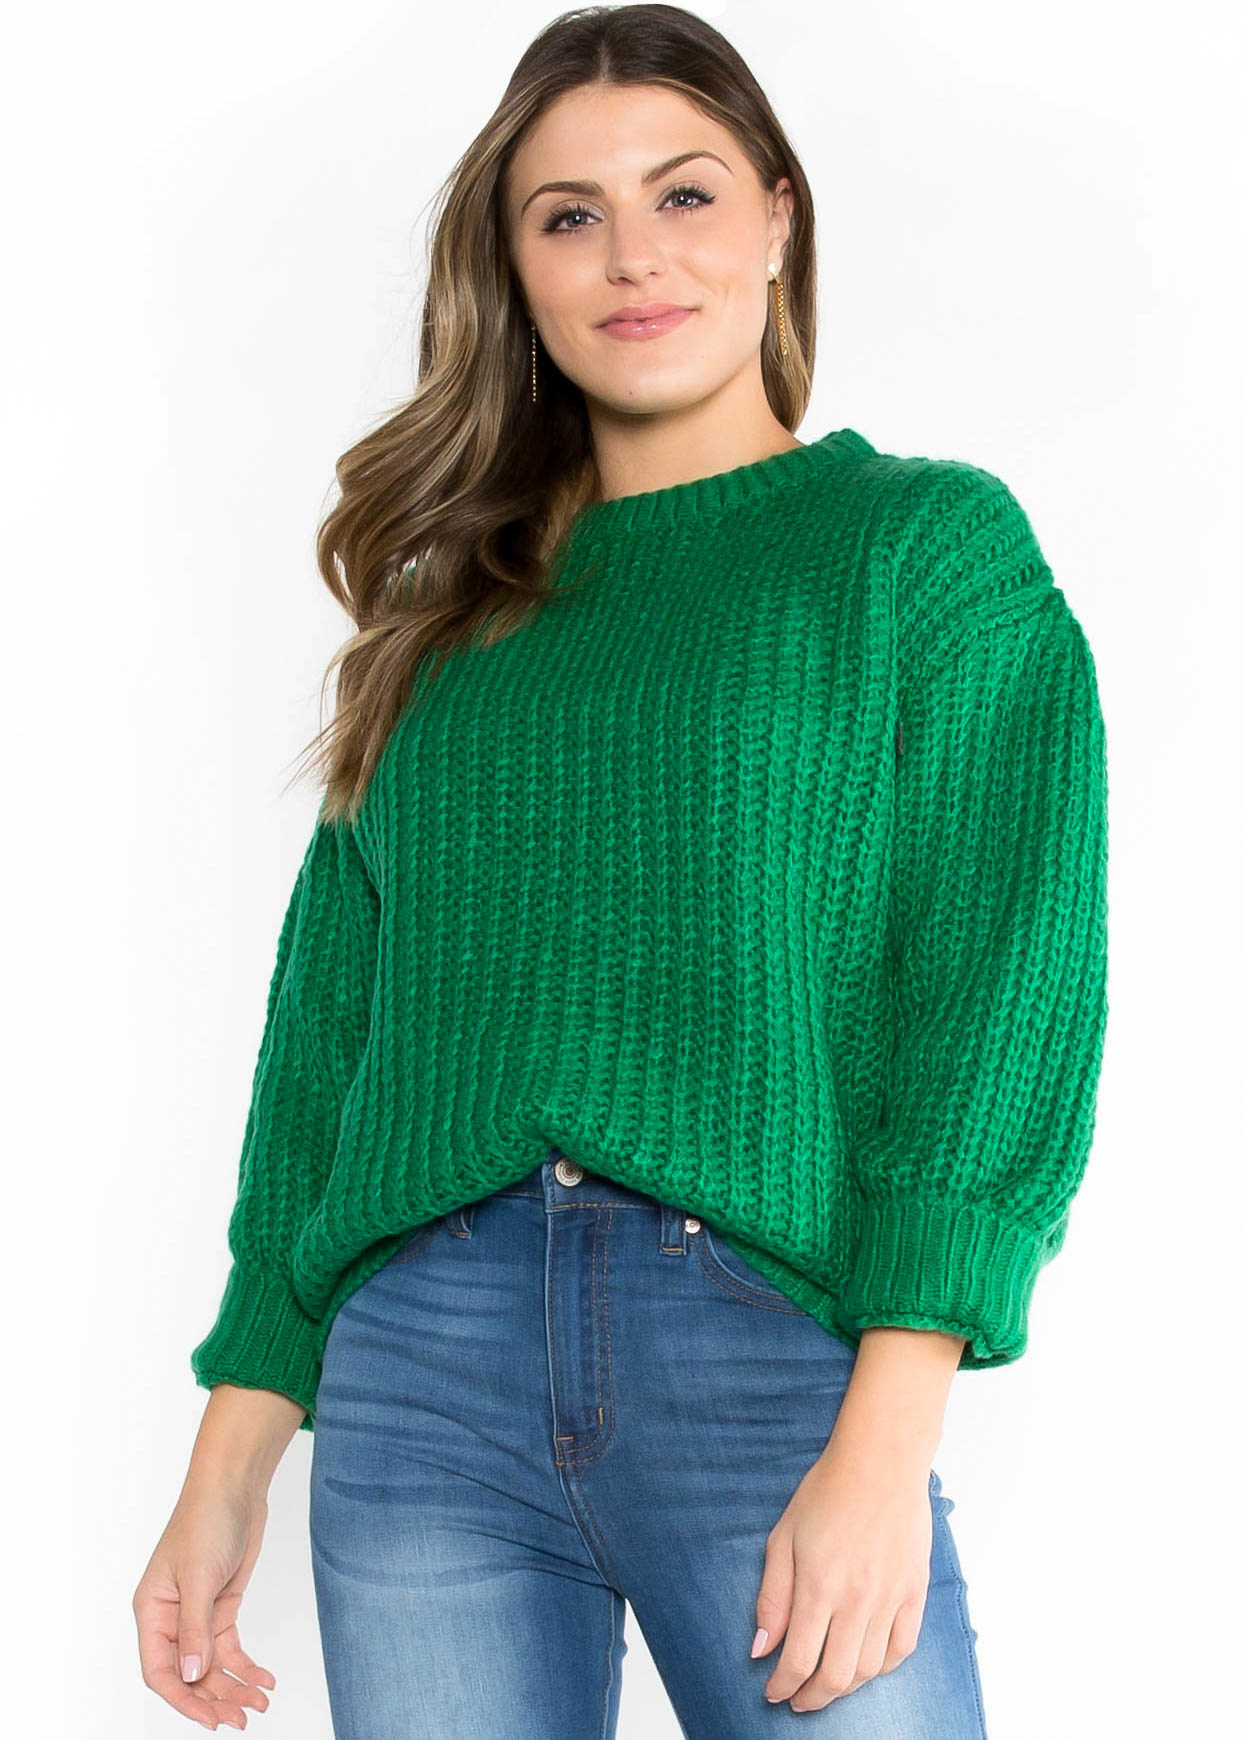 TREE LIGHTING KNIT SWEATER